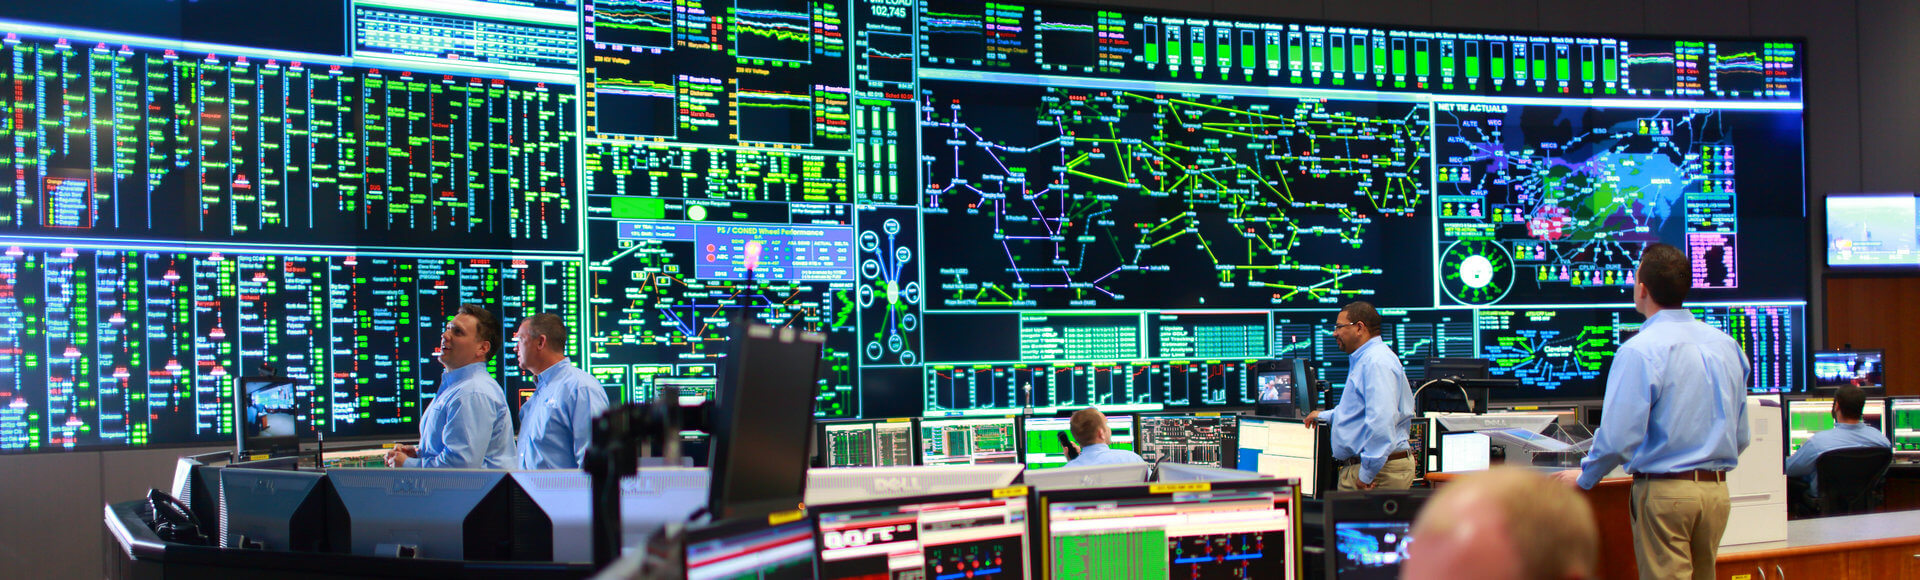 Control room& Conference 1920X580